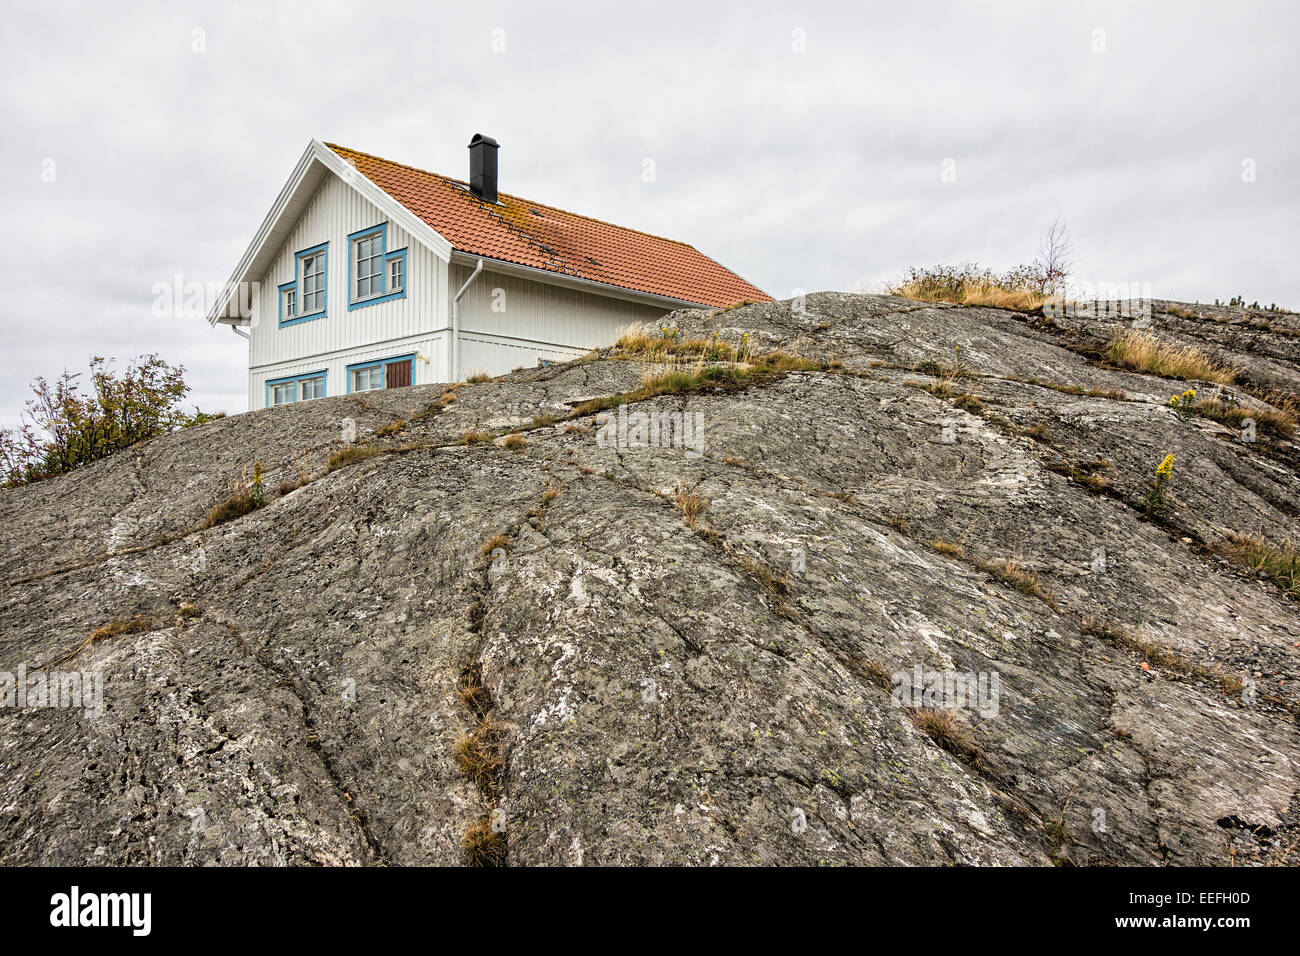 Building on a rock on the island Orust in Sweden - Stock Image